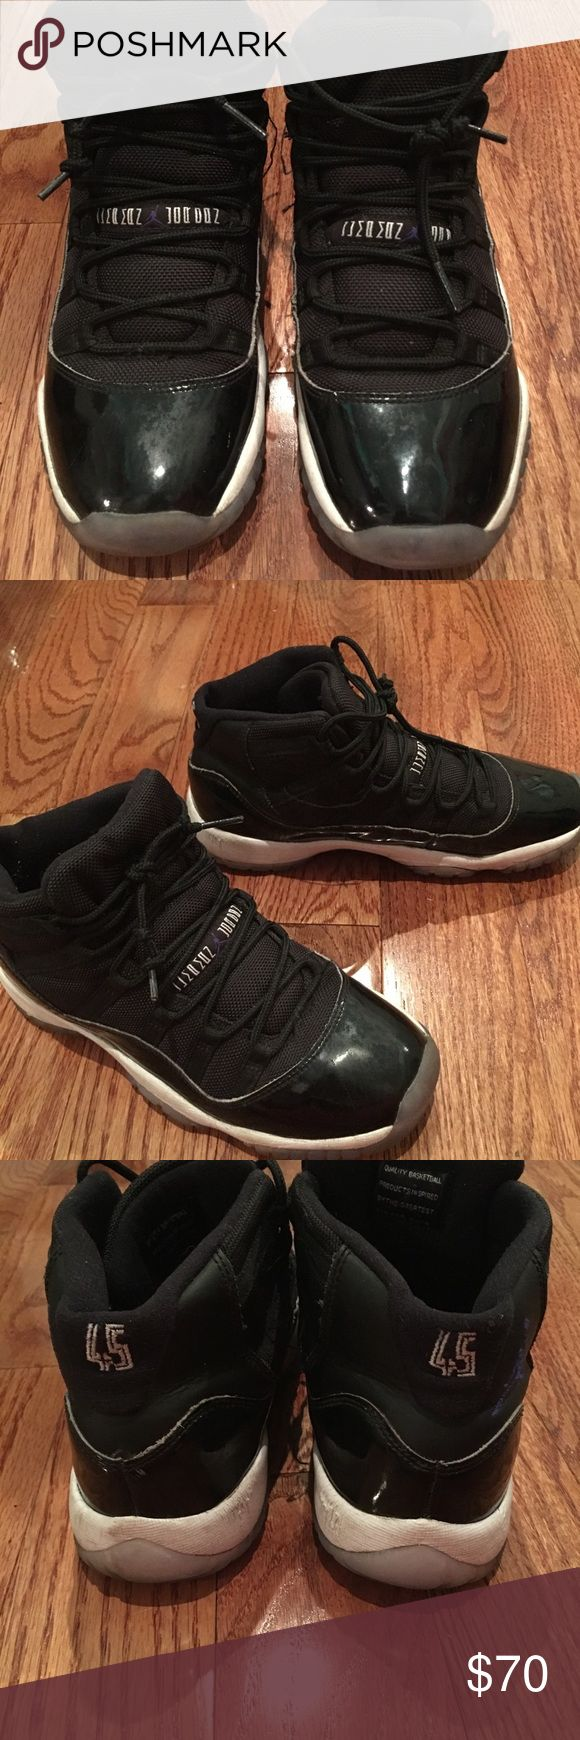 💪🏽 Jordan Retro 11 SpaceJams 💪🏽 All black Jordan sneakers ... minor wear ...minor dirt stains ...always taking offers!!! Jordan Shoes Sneakers